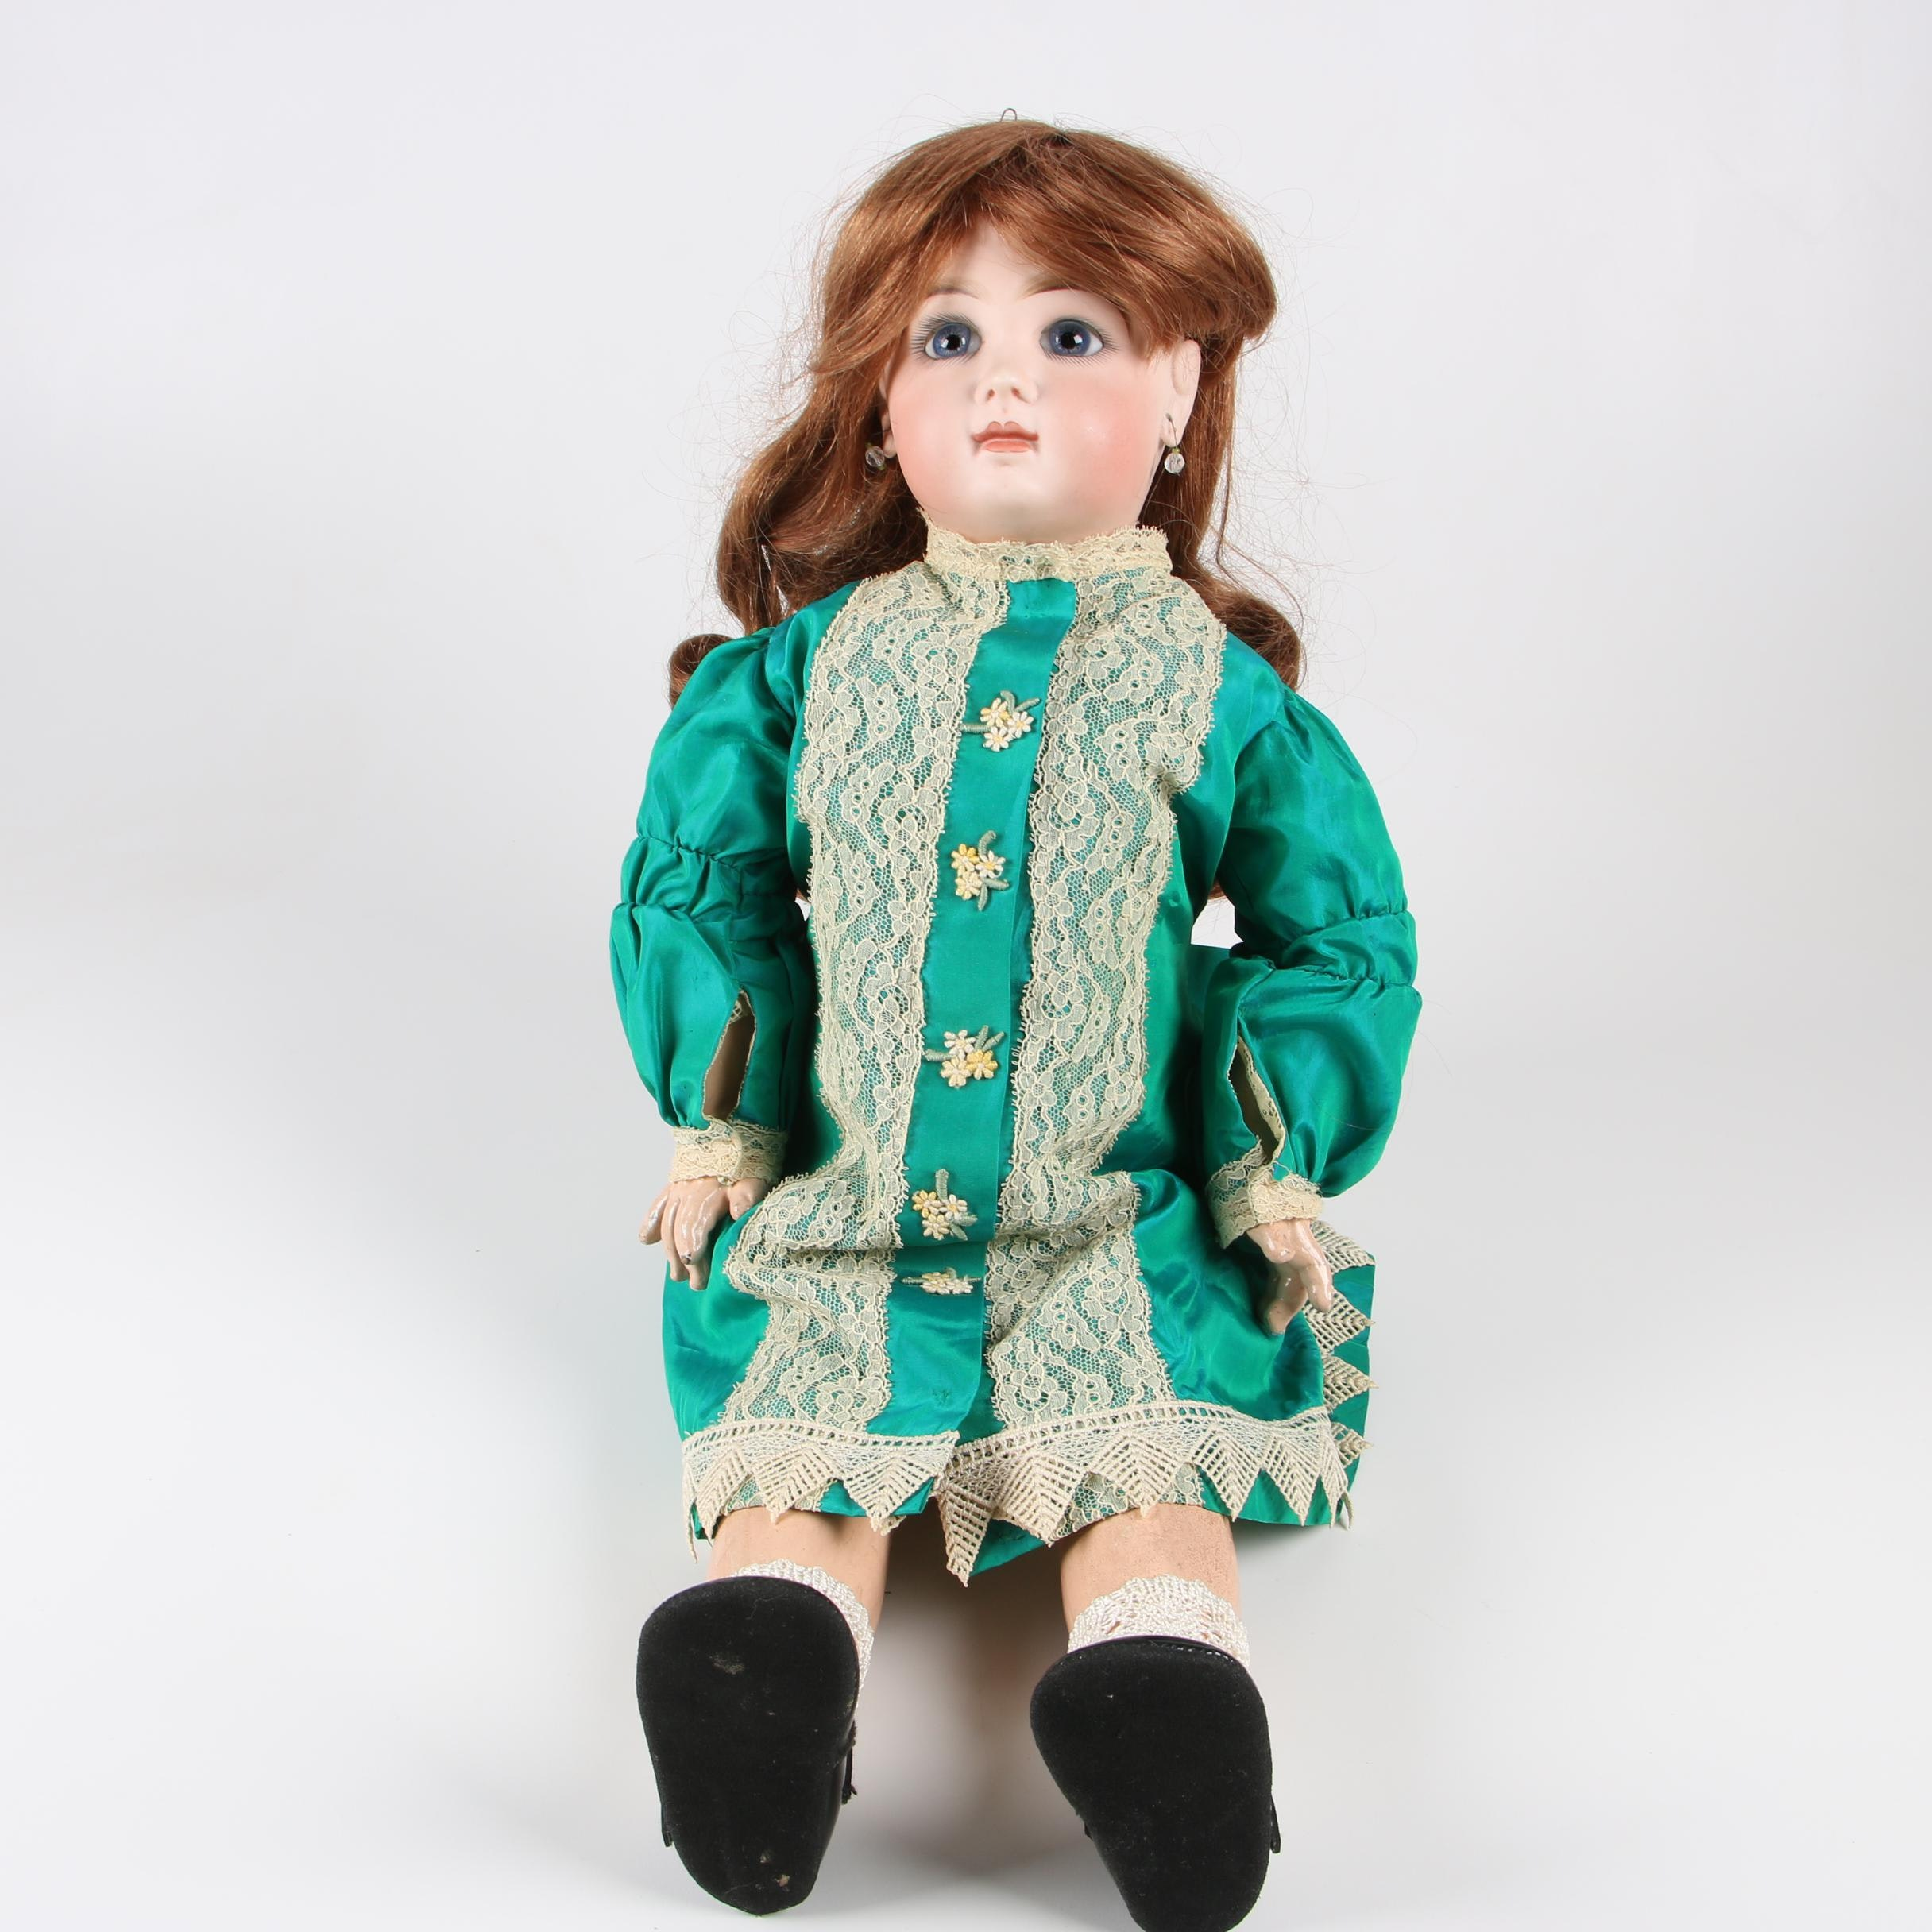 Tête Jumeau French Bisque and Composite Bébé Doll, Late 19th Century